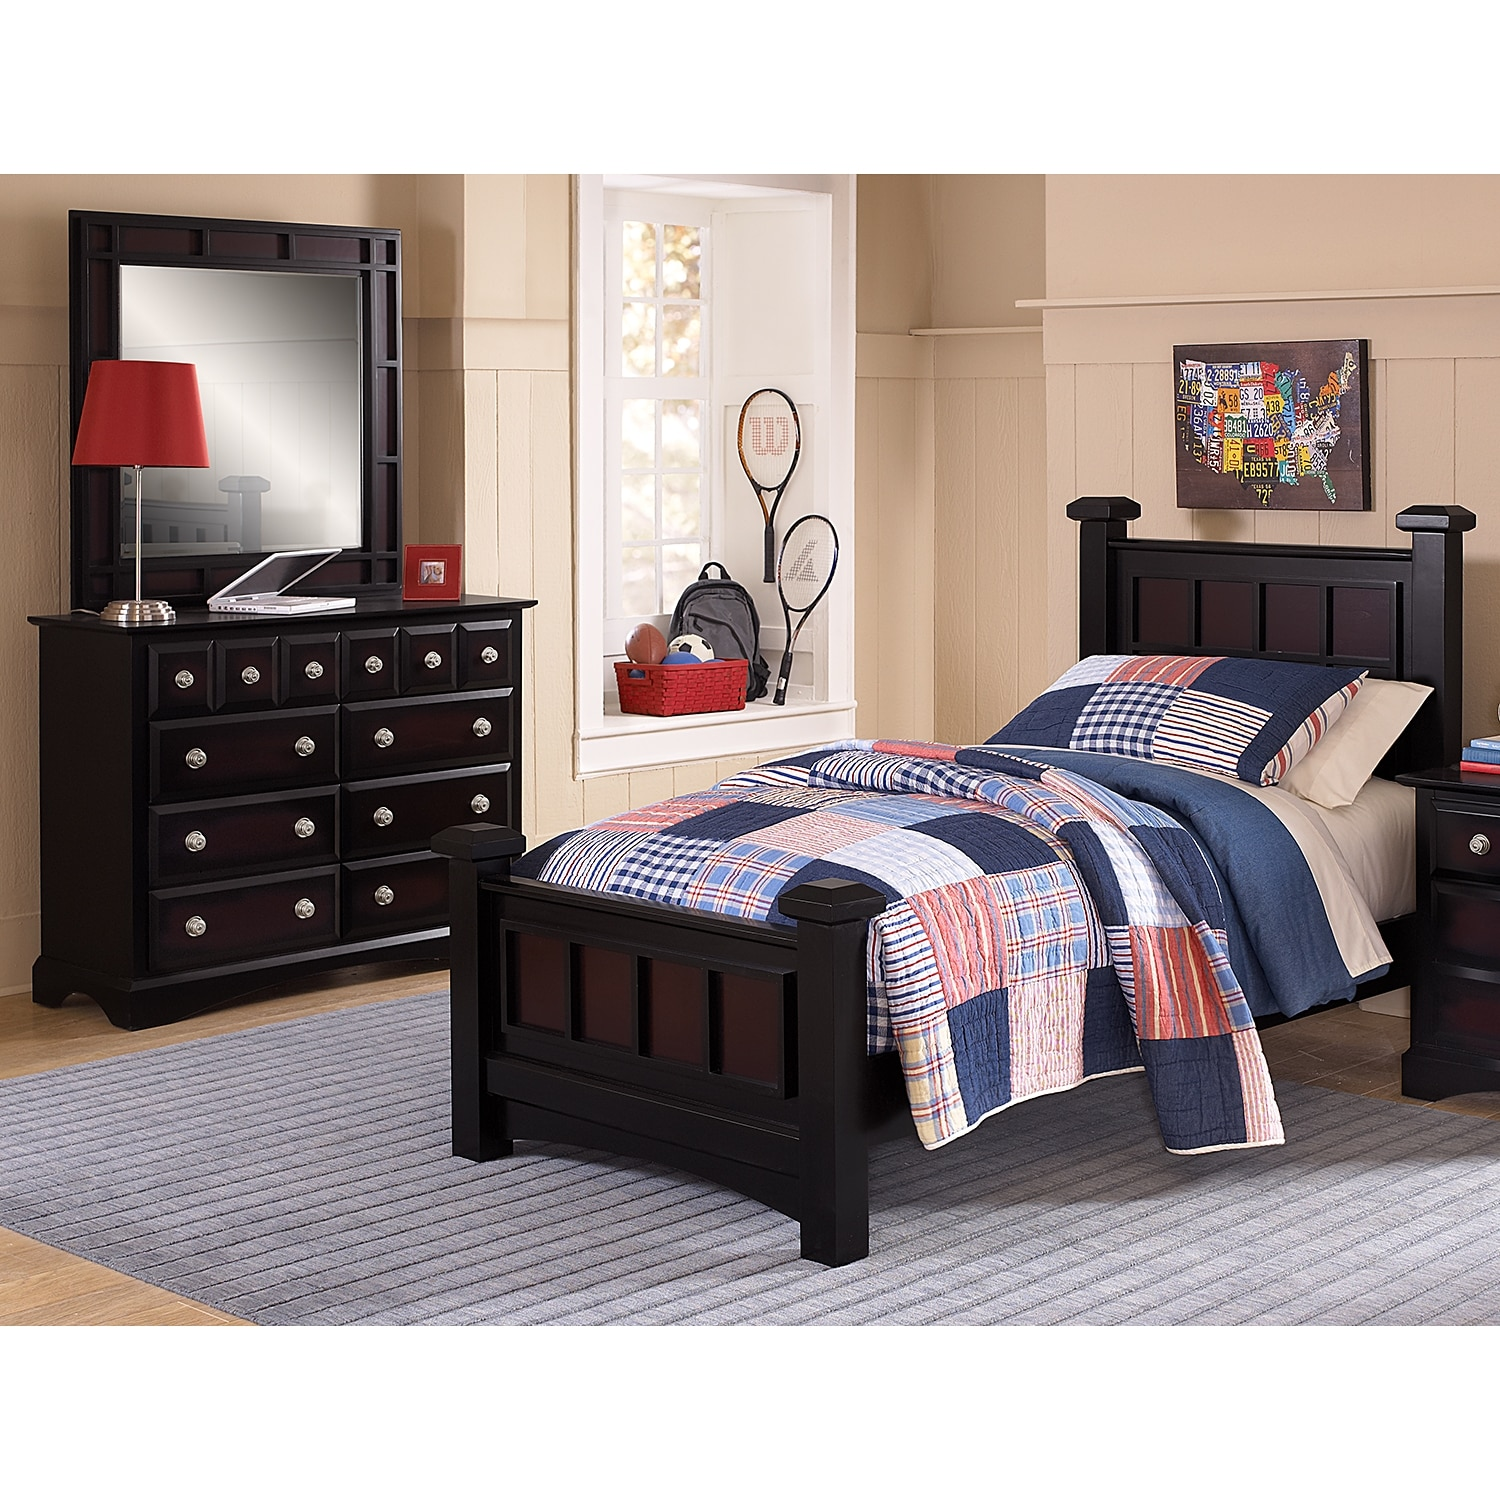 Winchester 5 Piece Full Bedroom Set Black And Burnished